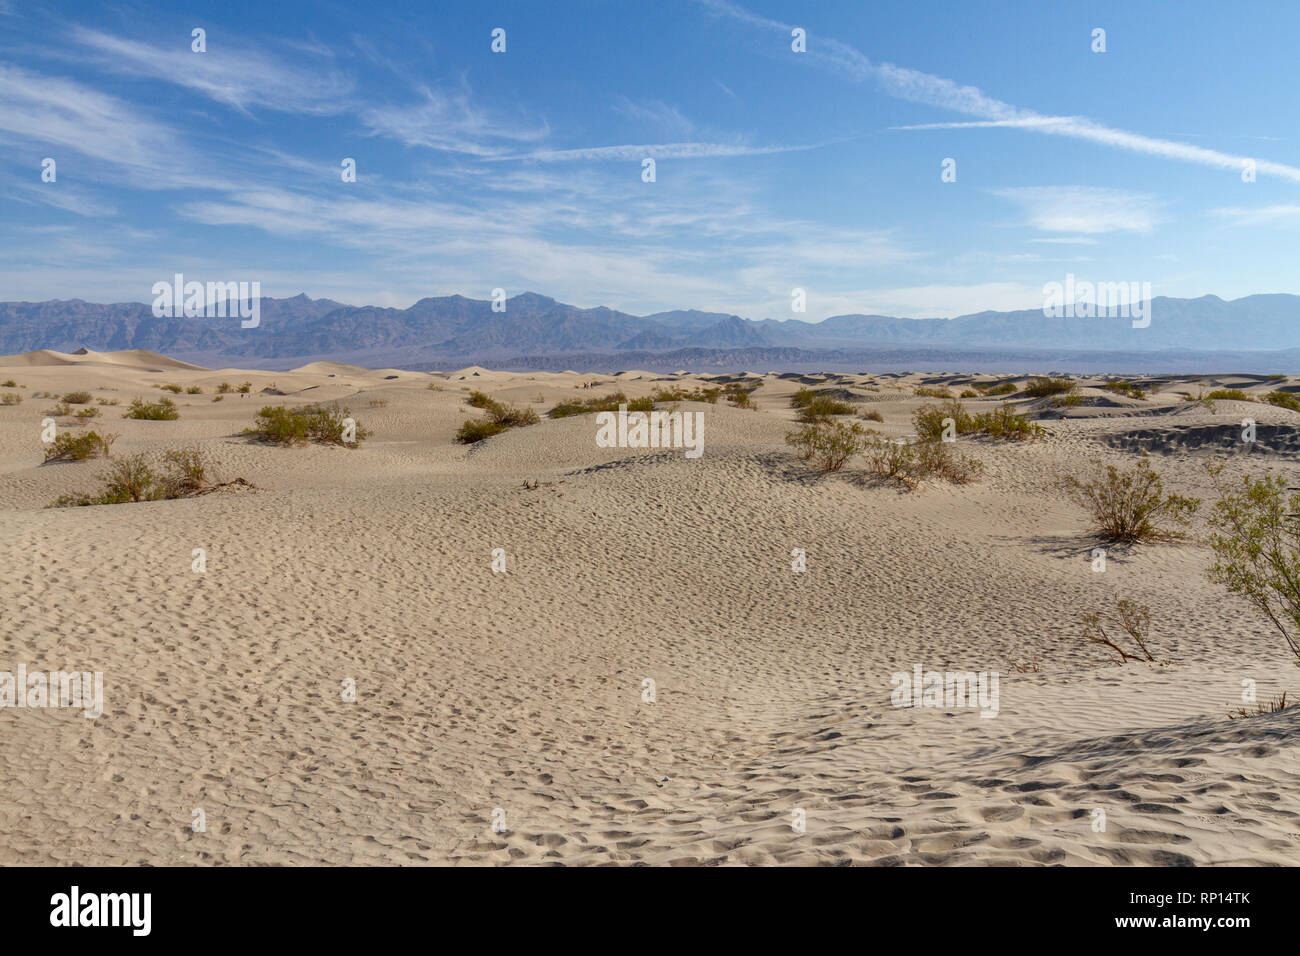 View across Mesquite Flat Sand Dunes, Death Valley National Park, California, United States - Stock Image